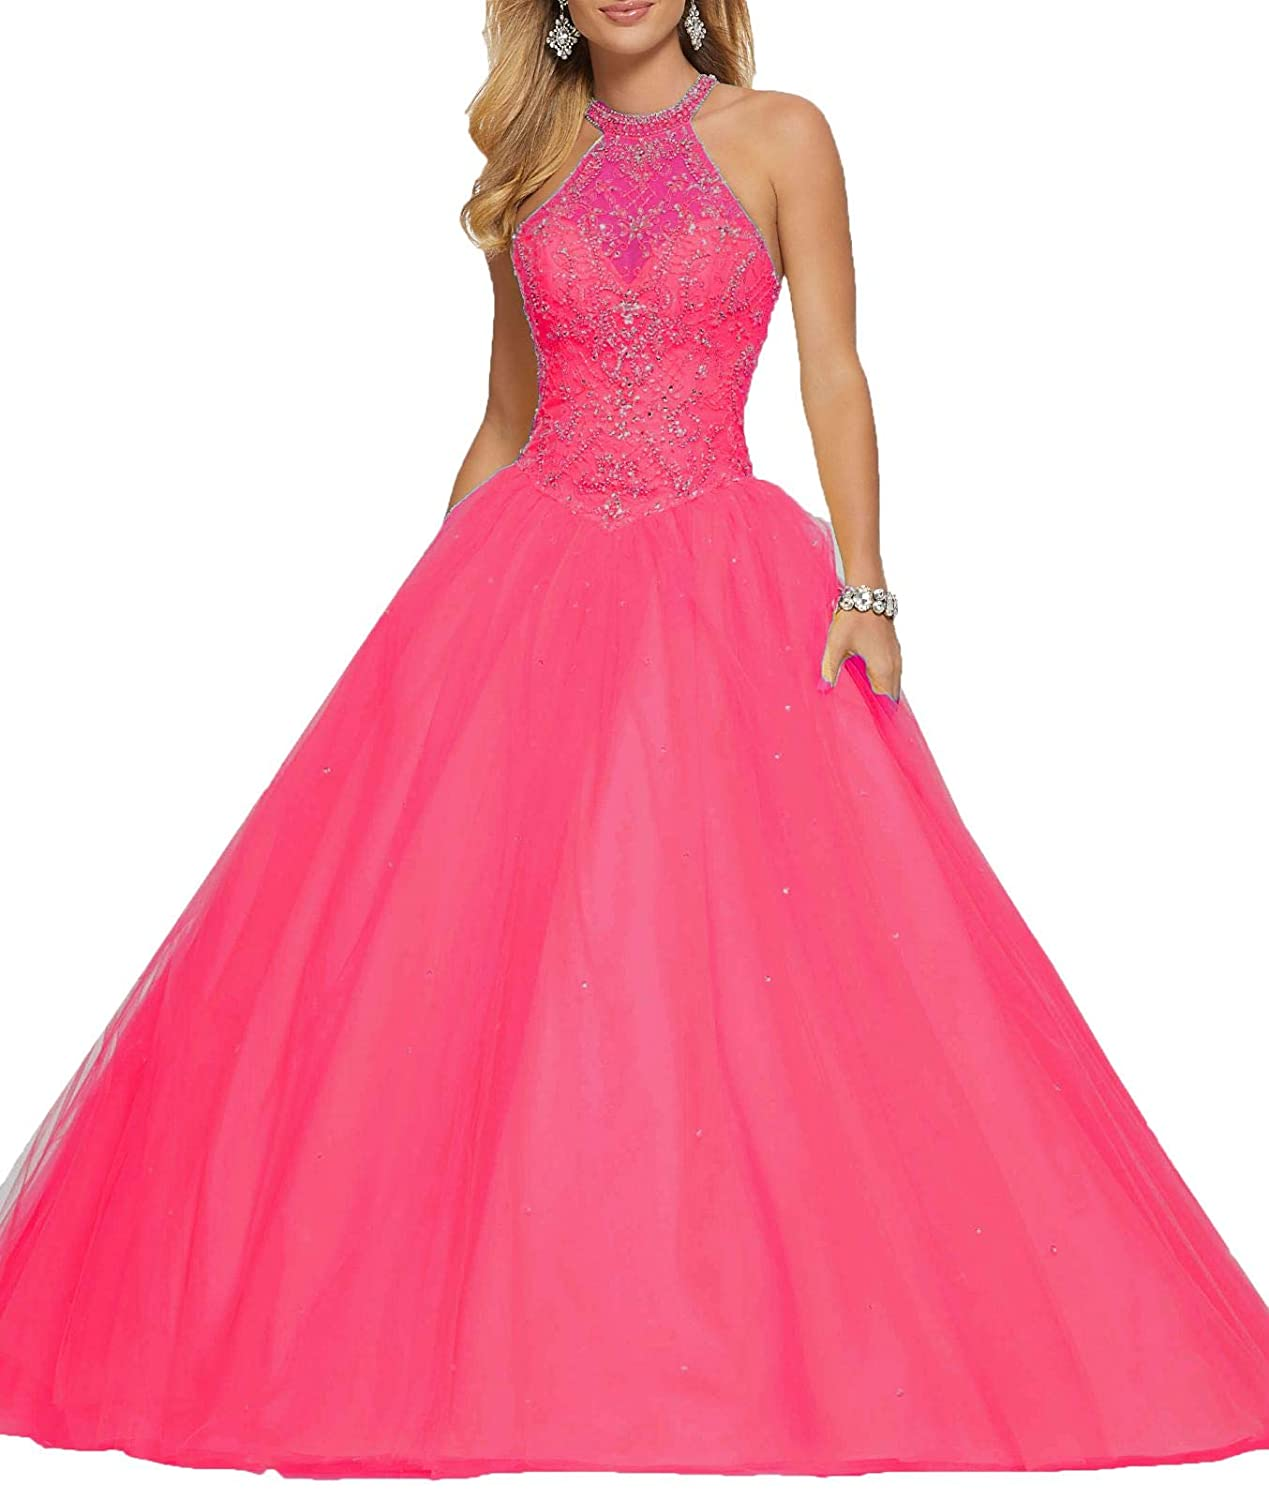 Pink2 Wanshaqin Women's High Neck Lace Prom Ball Gowns with Beading Appliques Quinceanera Dresses Tulle